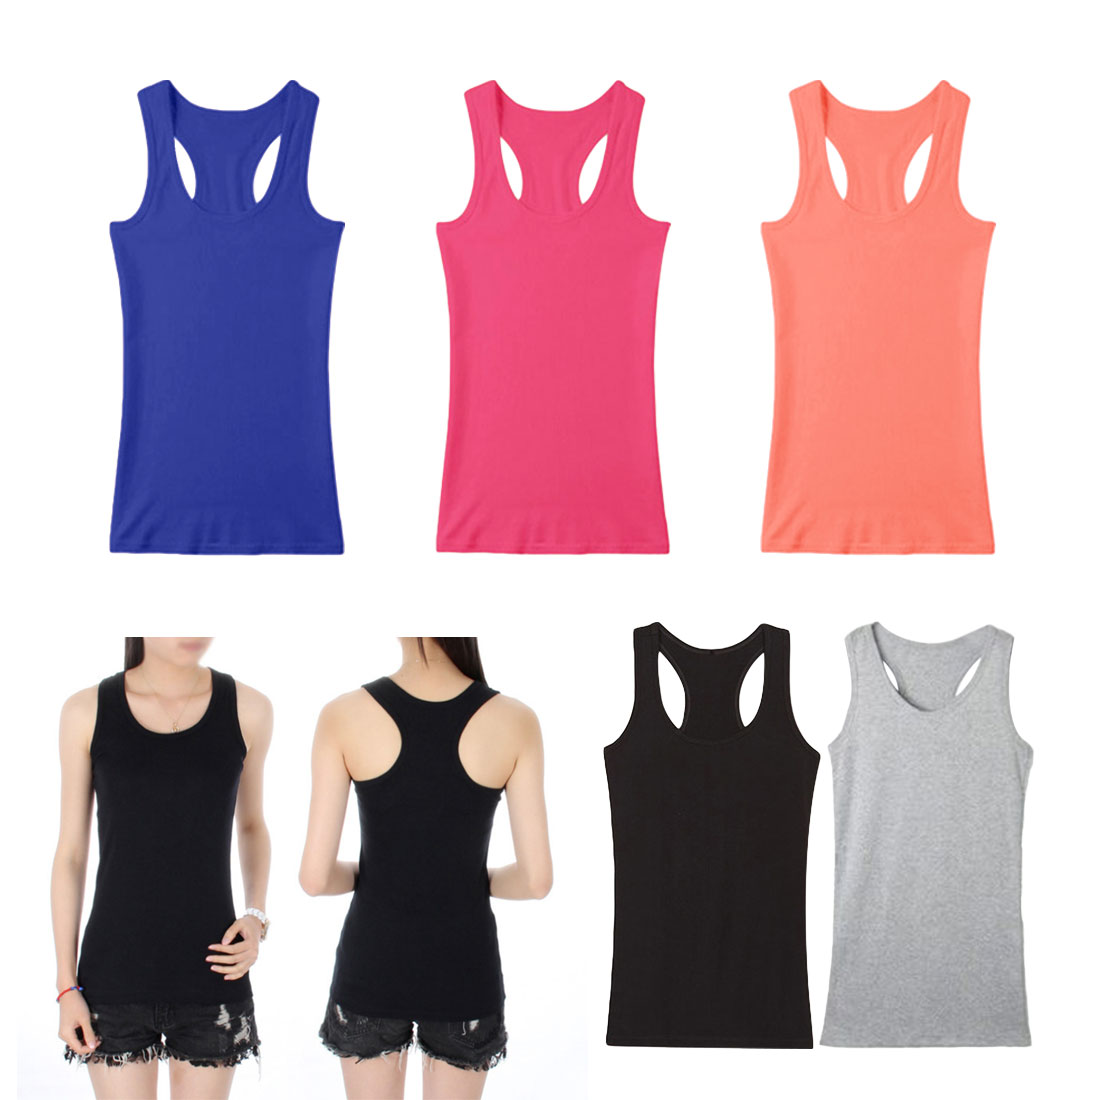 Image 3 - Women Spring Summer Tank Tops Sleeveless Loose Tee Tops Ladies Round Neck Vest Singlets Camisole Cotton Slim Thin Vest-in Tank Tops from Women's Clothing